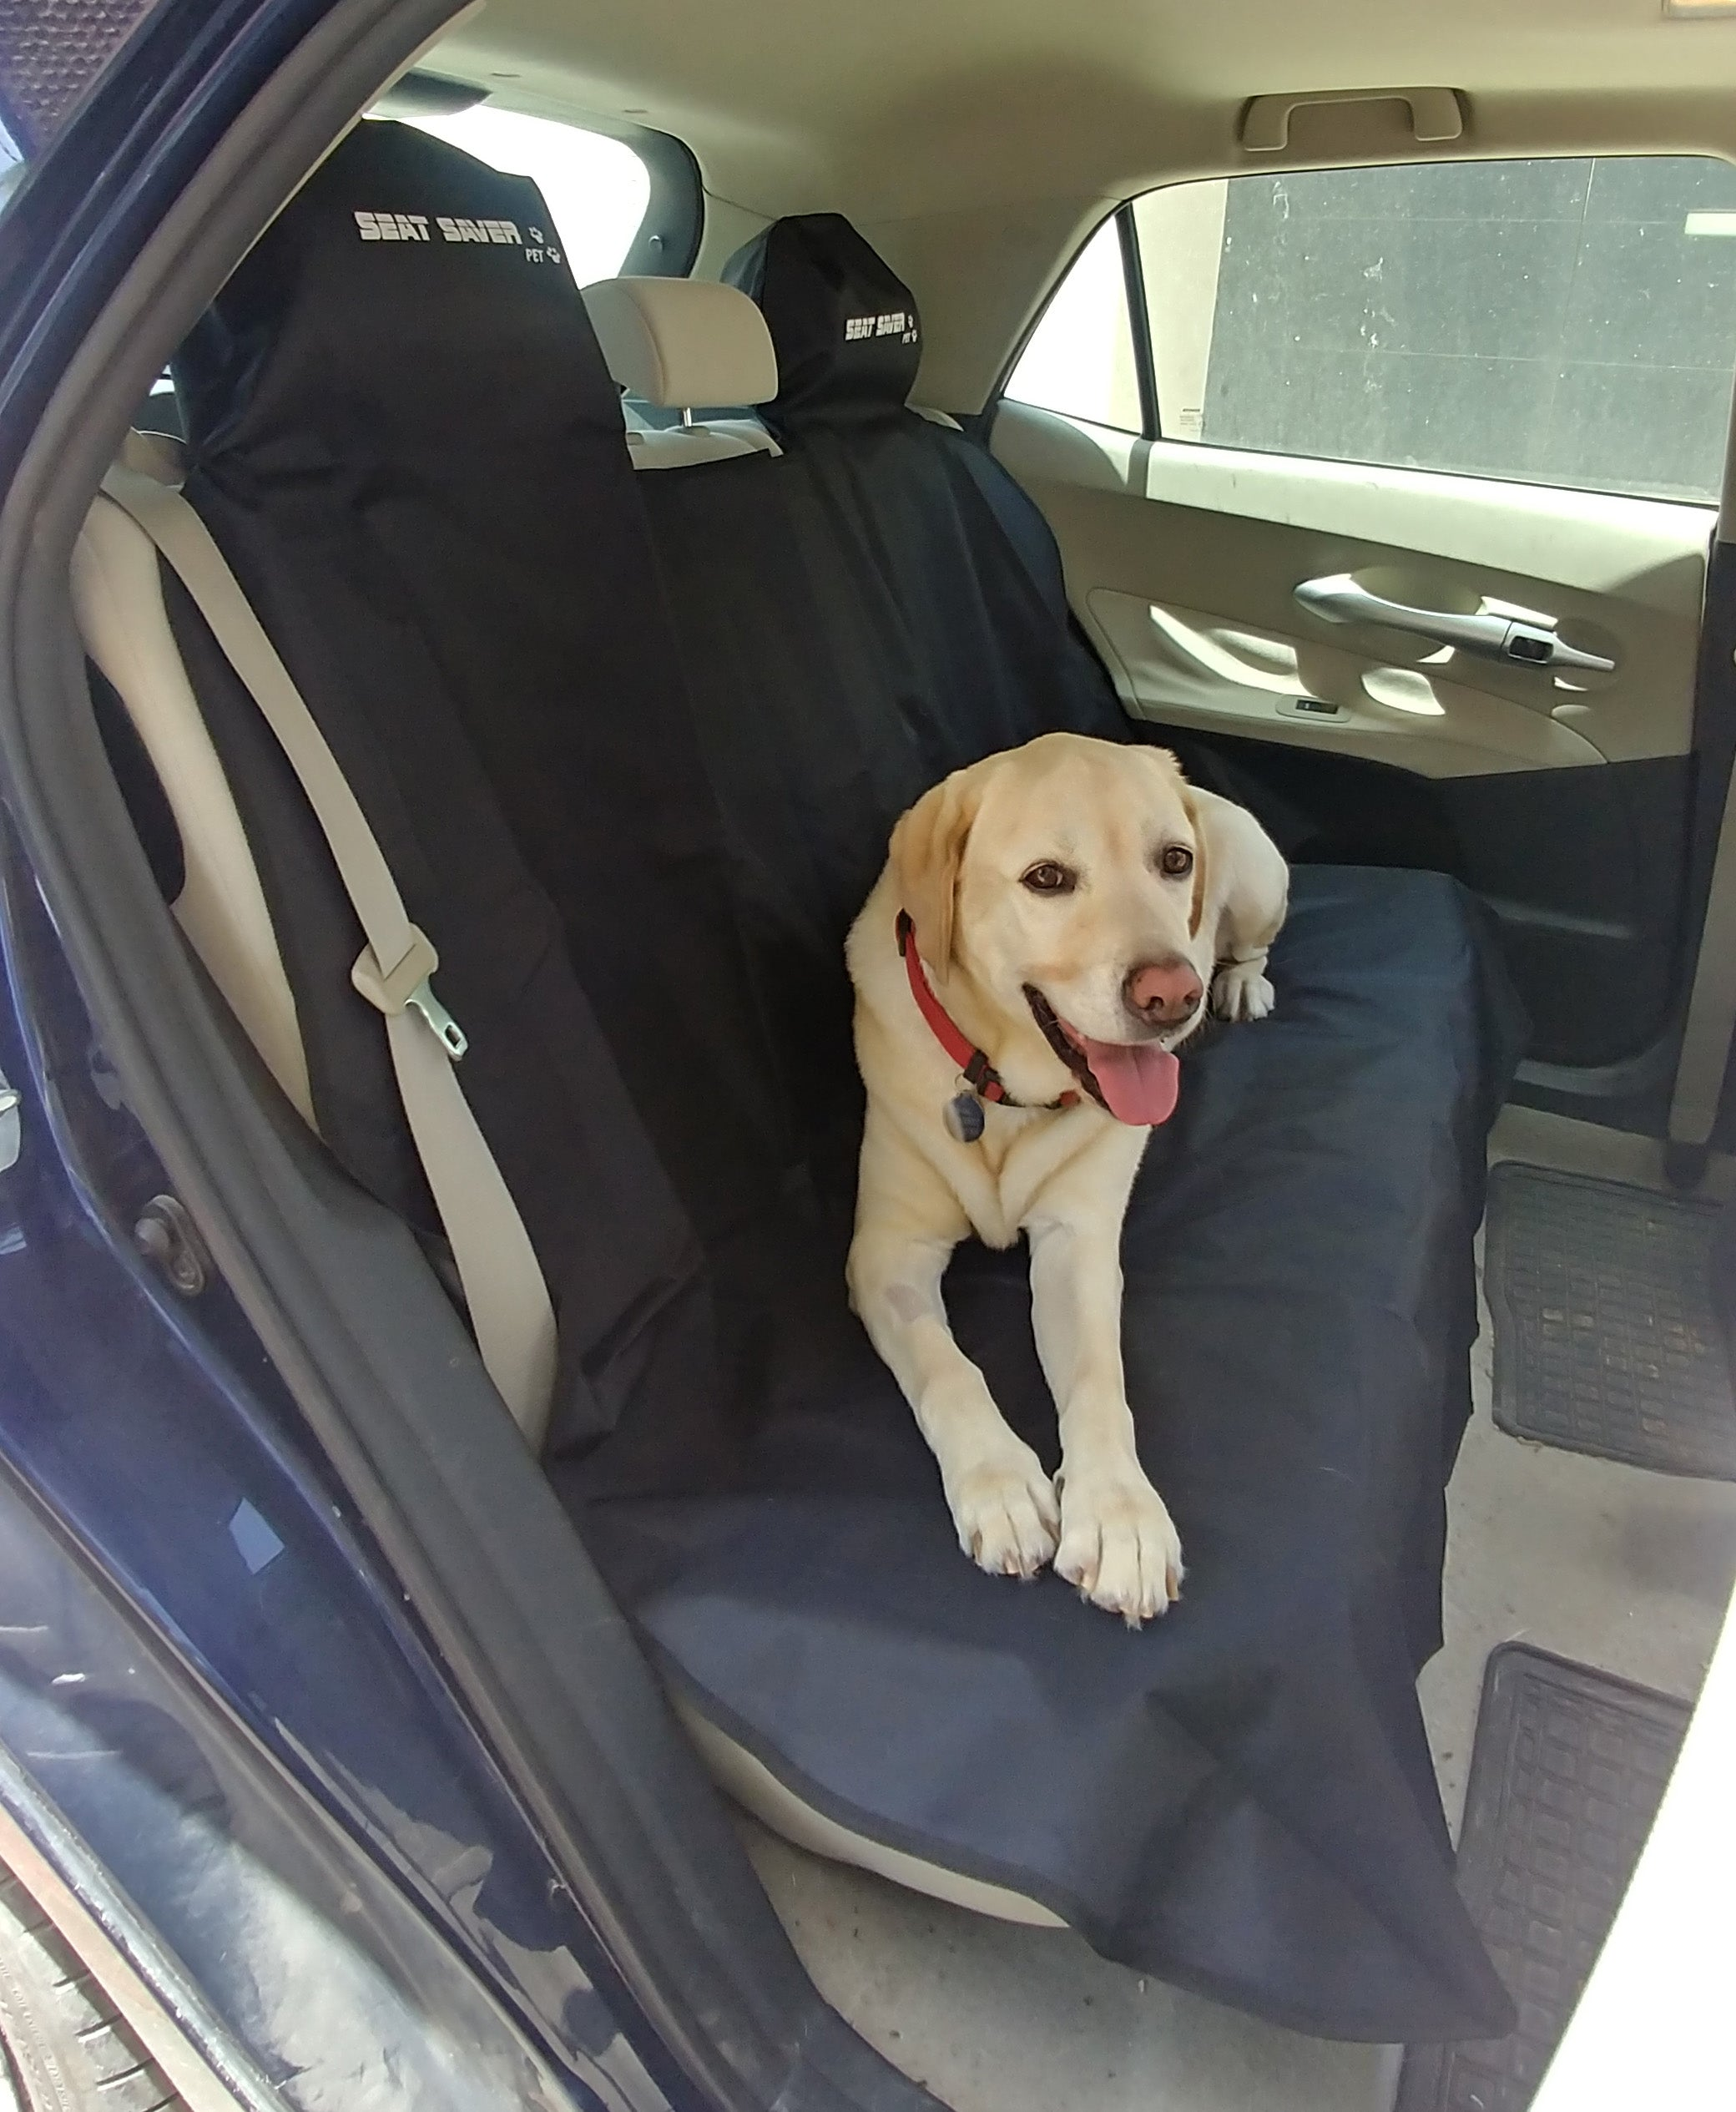 Pet SEAT-SAVER Rear Car Seat Cover - Black